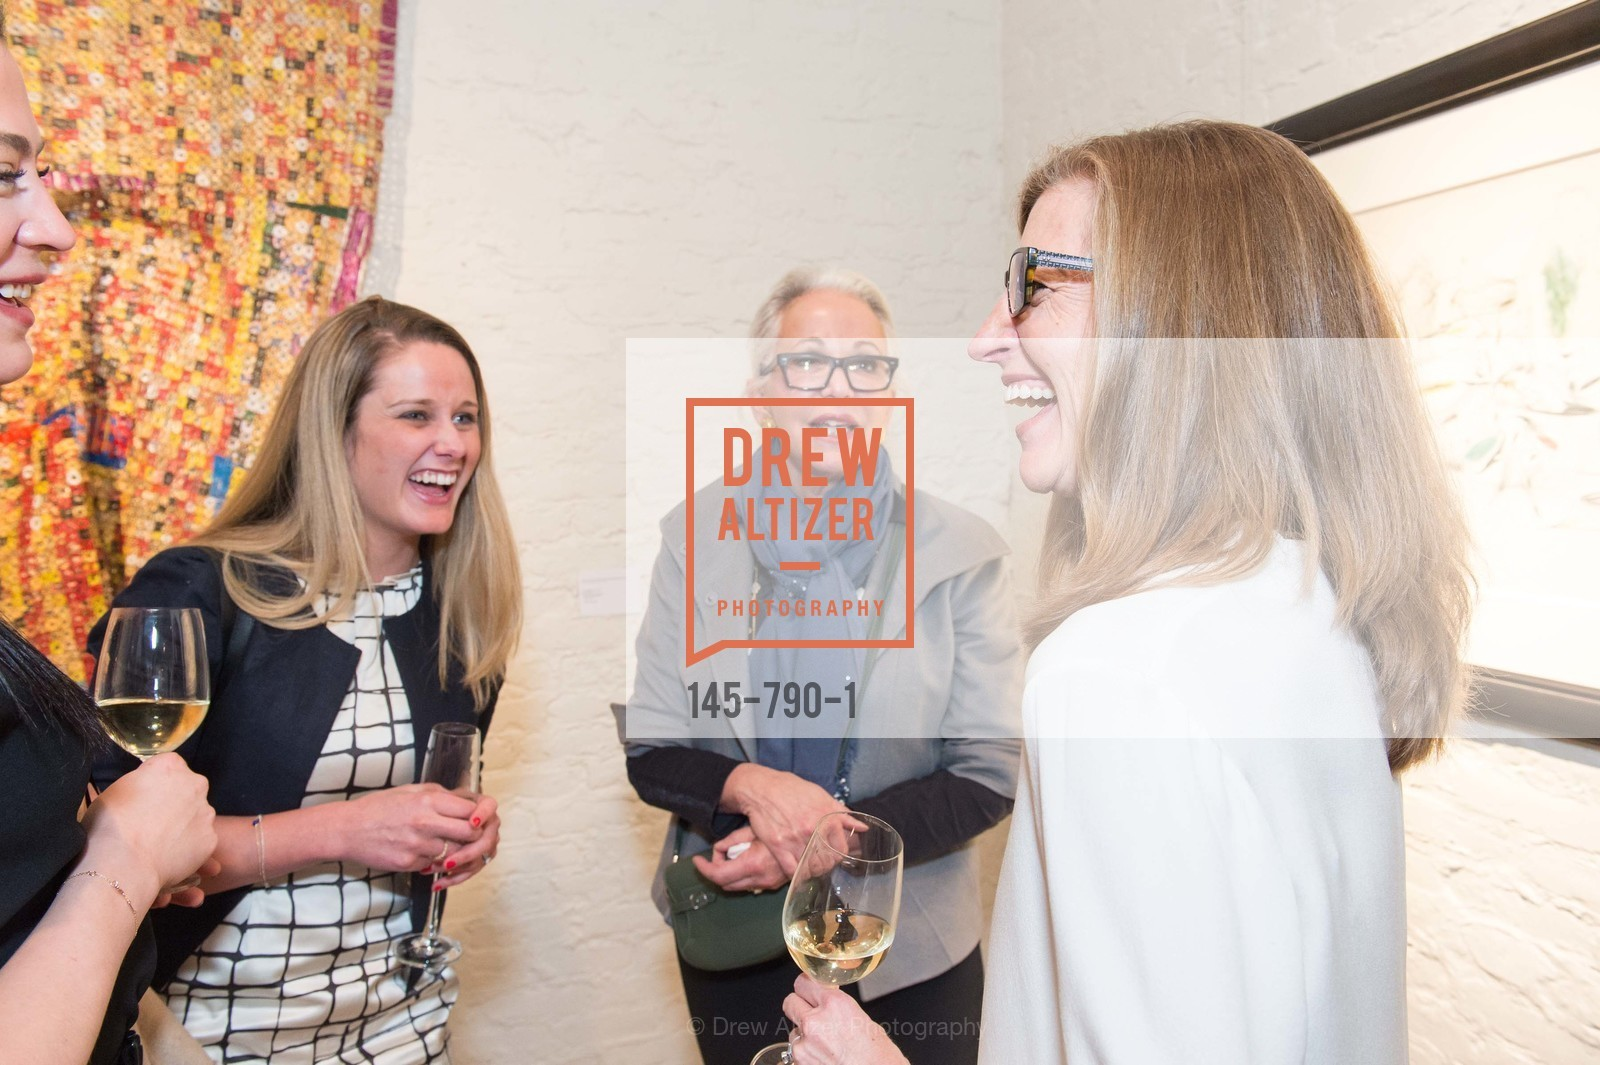 Lindsey Snyder, Nancy Ascher, Laura Nagle, Post War and Contemporary Preview at HEDGE GALLERY, US, April 15th, 2015,Drew Altizer, Drew Altizer Photography, full-service agency, private events, San Francisco photographer, photographer california